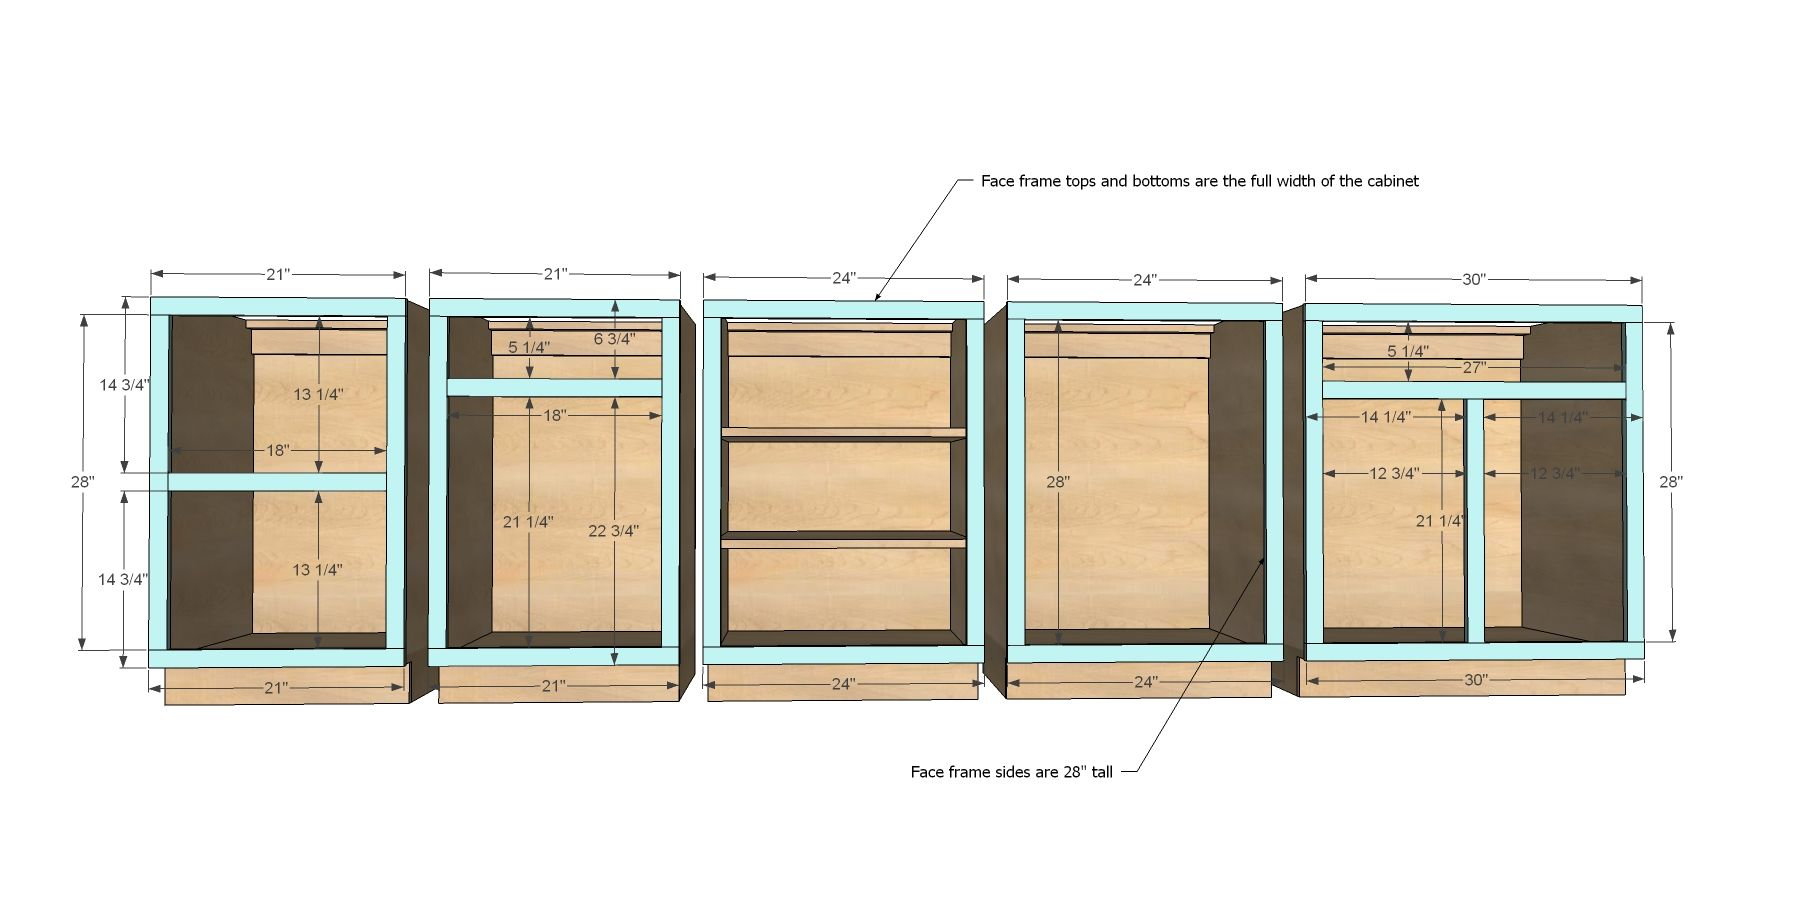 Build A Face Frame Base Kitchen Cabinet